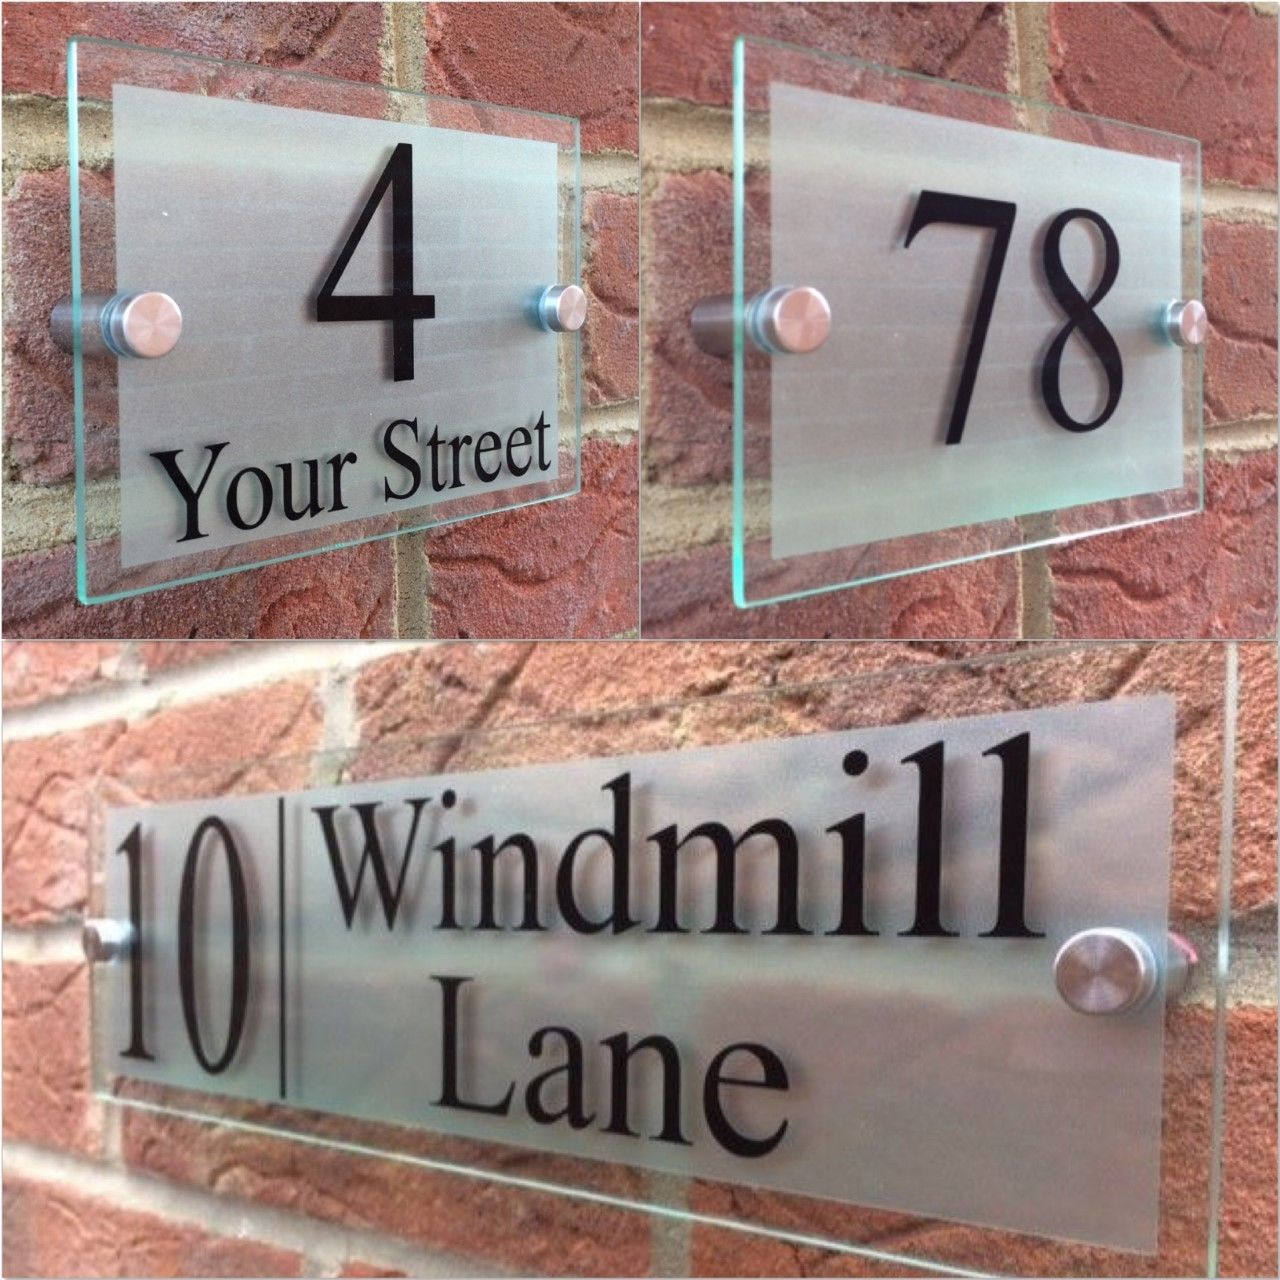 DOOR Contemporary HOUSE SIGN GLASS EFFECT ACRYLIC PLAQUE NUMBERS